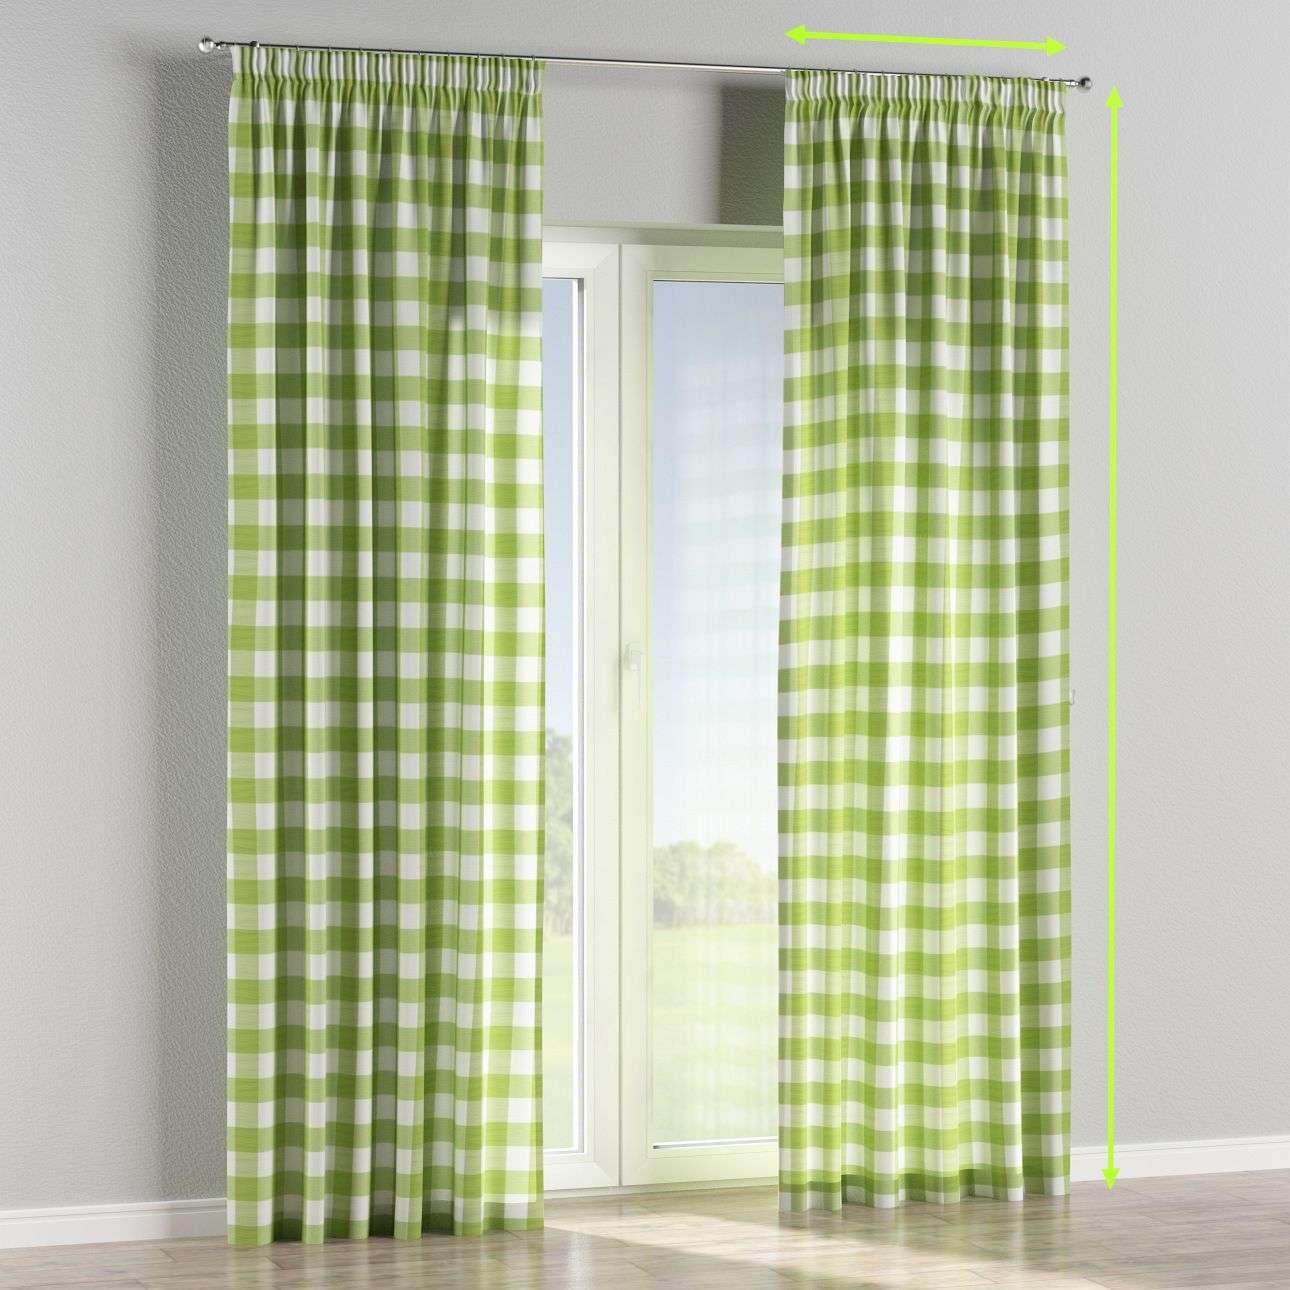 Pencil pleat lined curtains in collection Quadro, fabric: 136-36